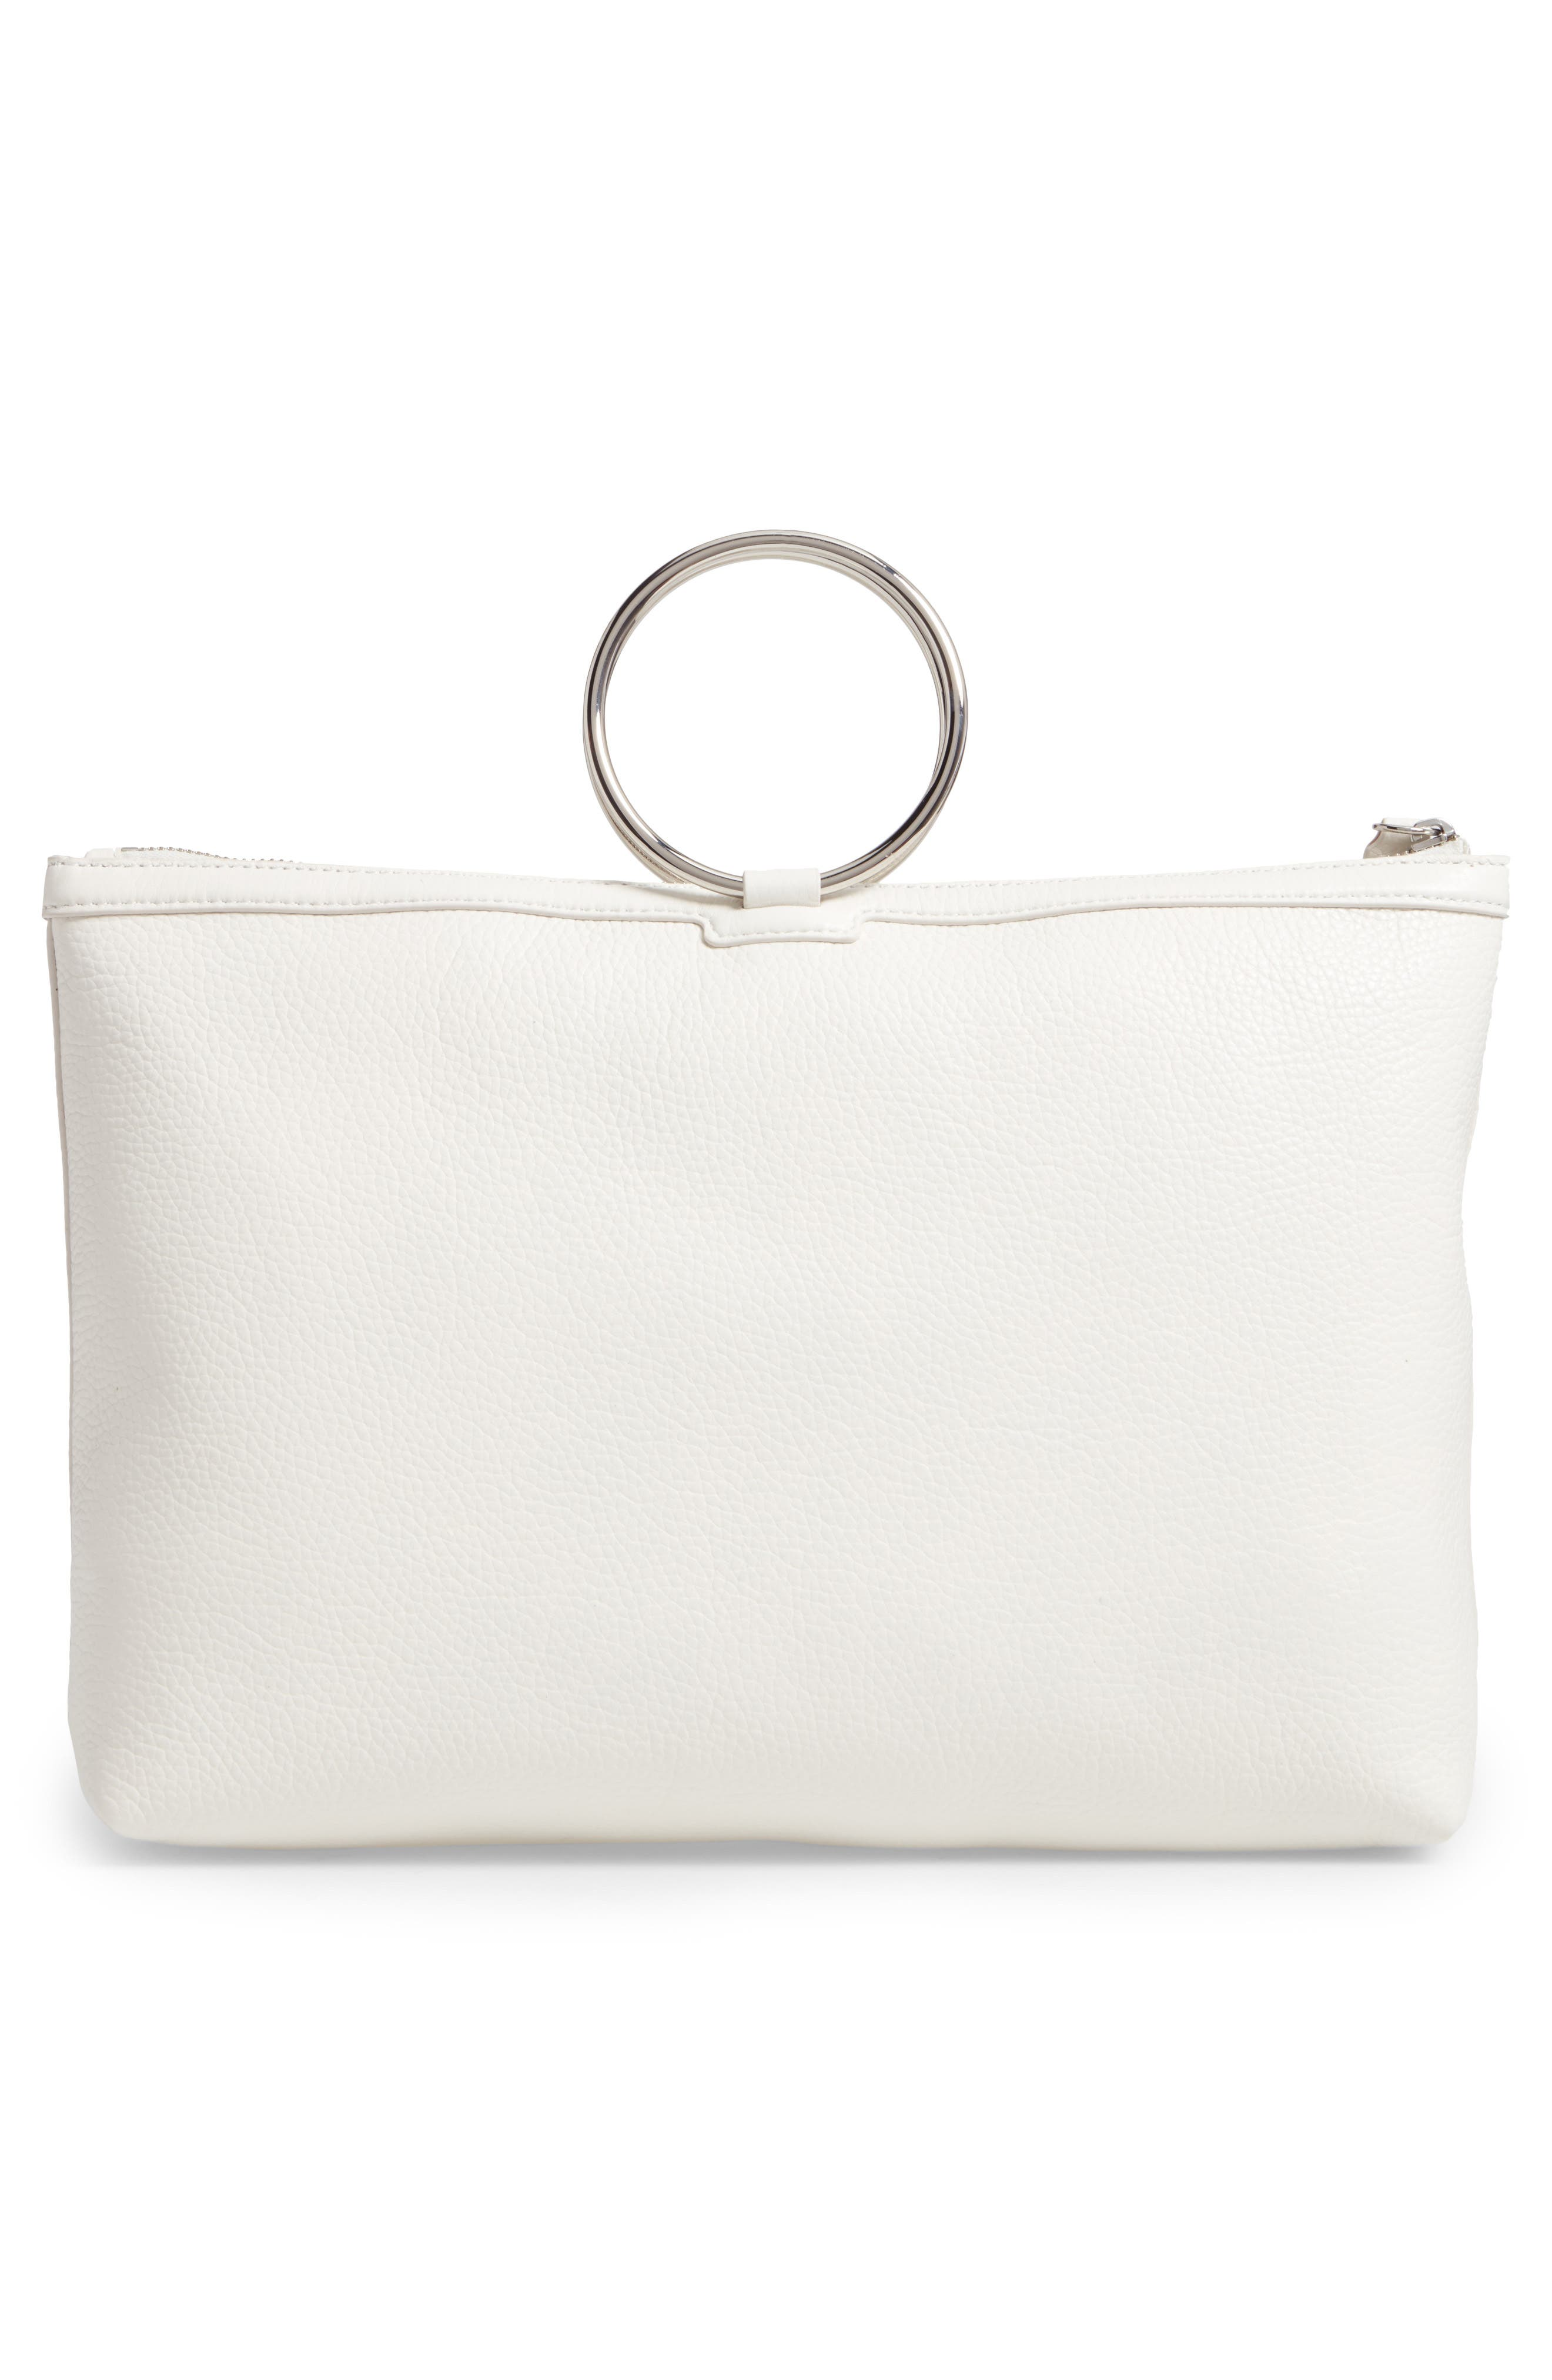 Large Pebbled Leather Ring Clutch,                             Alternate thumbnail 3, color,                             900